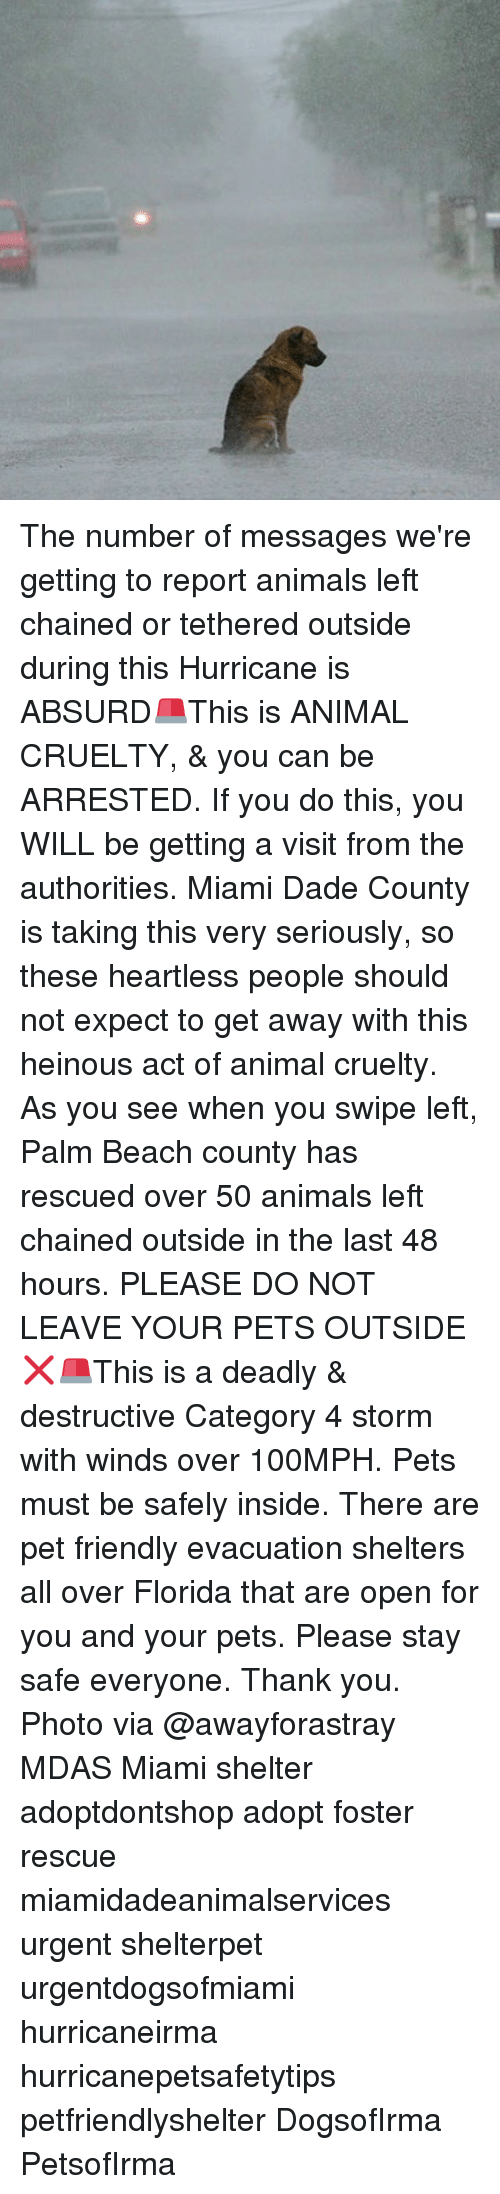 Animals, Memes, and Thank You: The number of messages we're getting to report animals left chained or tethered outside during this Hurricane is ABSURD🚨This is ANIMAL CRUELTY, & you can be ARRESTED. If you do this, you WILL be getting a visit from the authorities. Miami Dade County is taking this very seriously, so these heartless people should not expect to get away with this heinous act of animal cruelty. As you see when you swipe left, Palm Beach county has rescued over 50 animals left chained outside in the last 48 hours. PLEASE DO NOT LEAVE YOUR PETS OUTSIDE❌🚨This is a deadly & destructive Category 4 storm with winds over 100MPH. Pets must be safely inside. There are pet friendly evacuation shelters all over Florida that are open for you and your pets. Please stay safe everyone. Thank you. Photo via @awayforastray MDAS Miami shelter adoptdontshop adopt foster rescue miamidadeanimalservices urgent shelterpet urgentdogsofmiami hurricaneirma hurricanepetsafetytips petfriendlyshelter DogsofIrma PetsofIrma